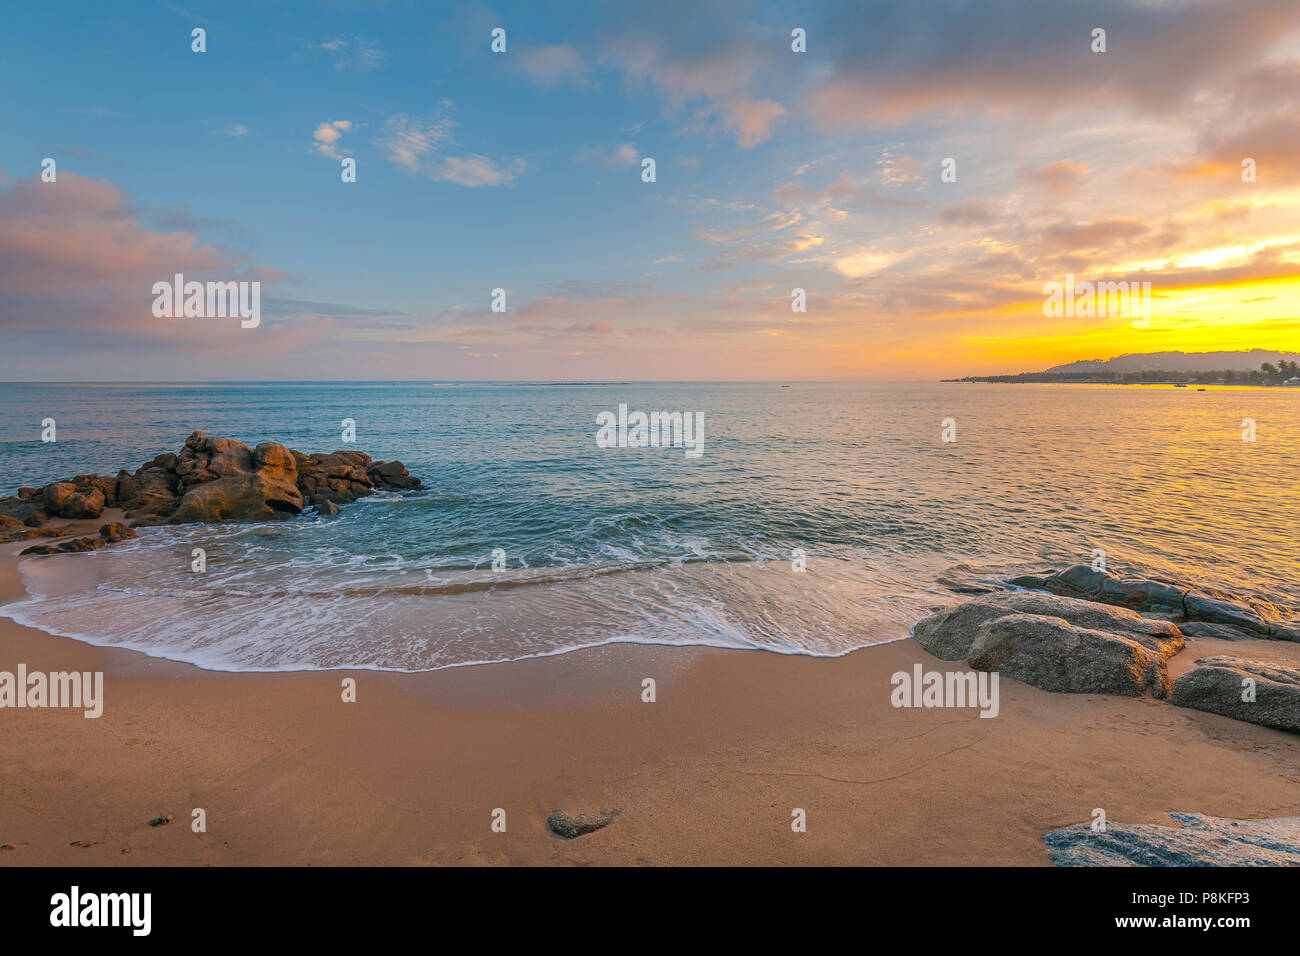 A colorful sunset on the island of Koh Samui in Thailand. - Stock Image